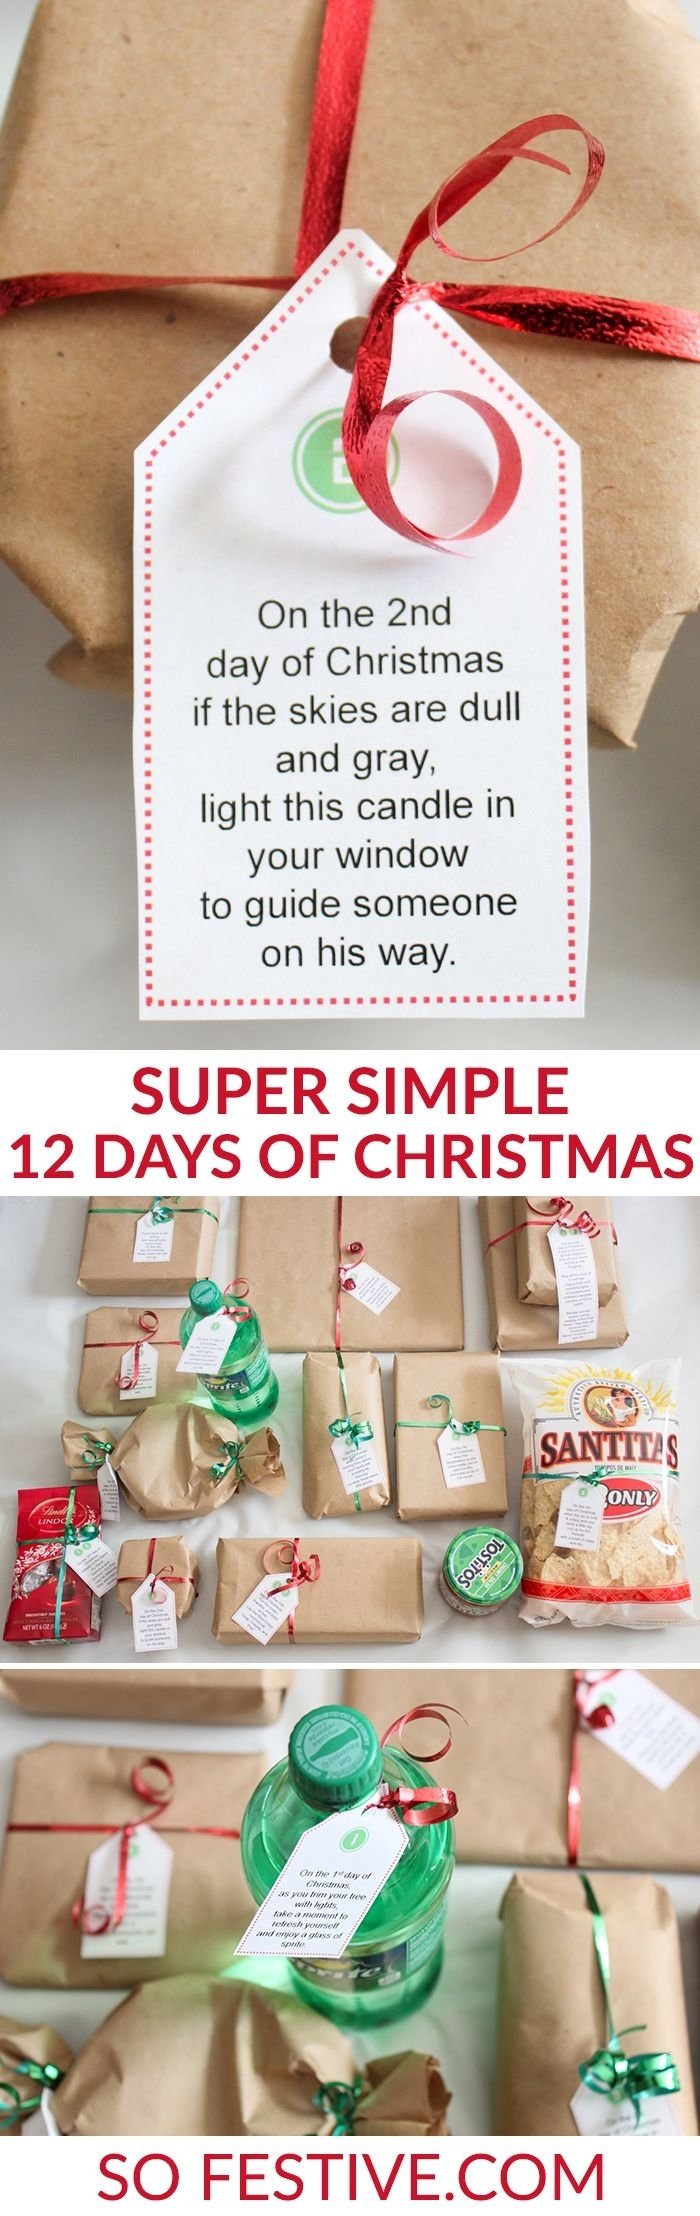 10 Unique 12 Days Of Christmas Ideas For Husband